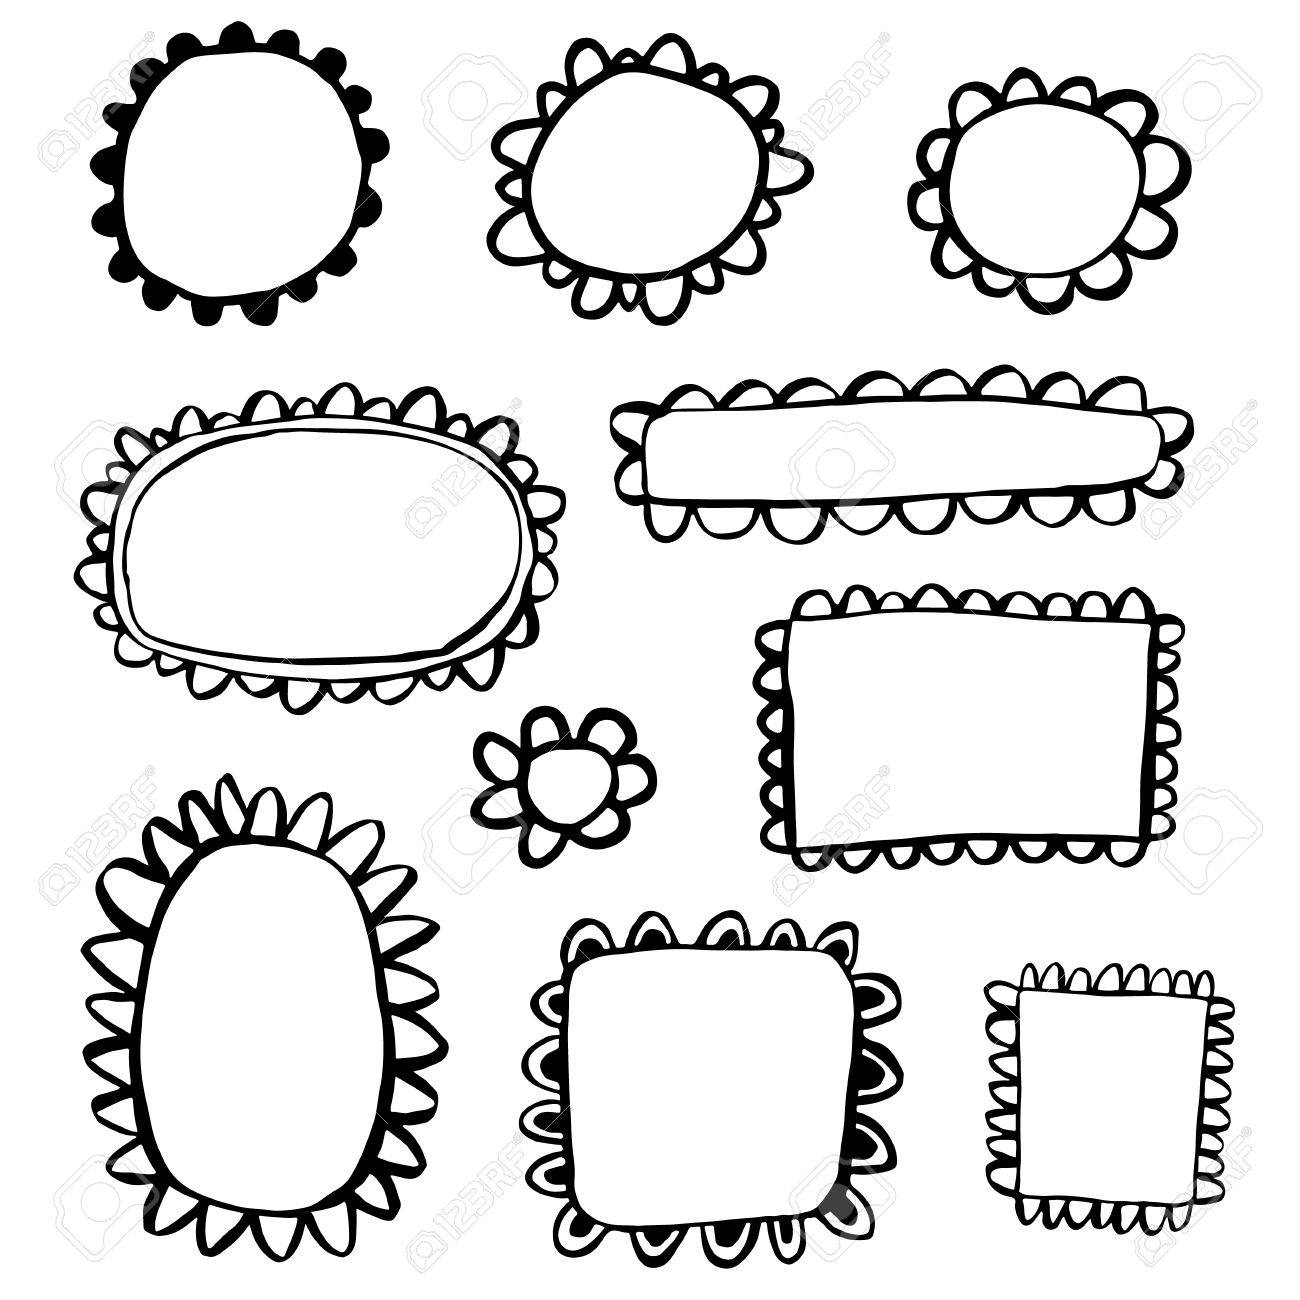 Scribbled Hand Drawn Scalloped Frames Royalty Free Cliparts, Vectors ...